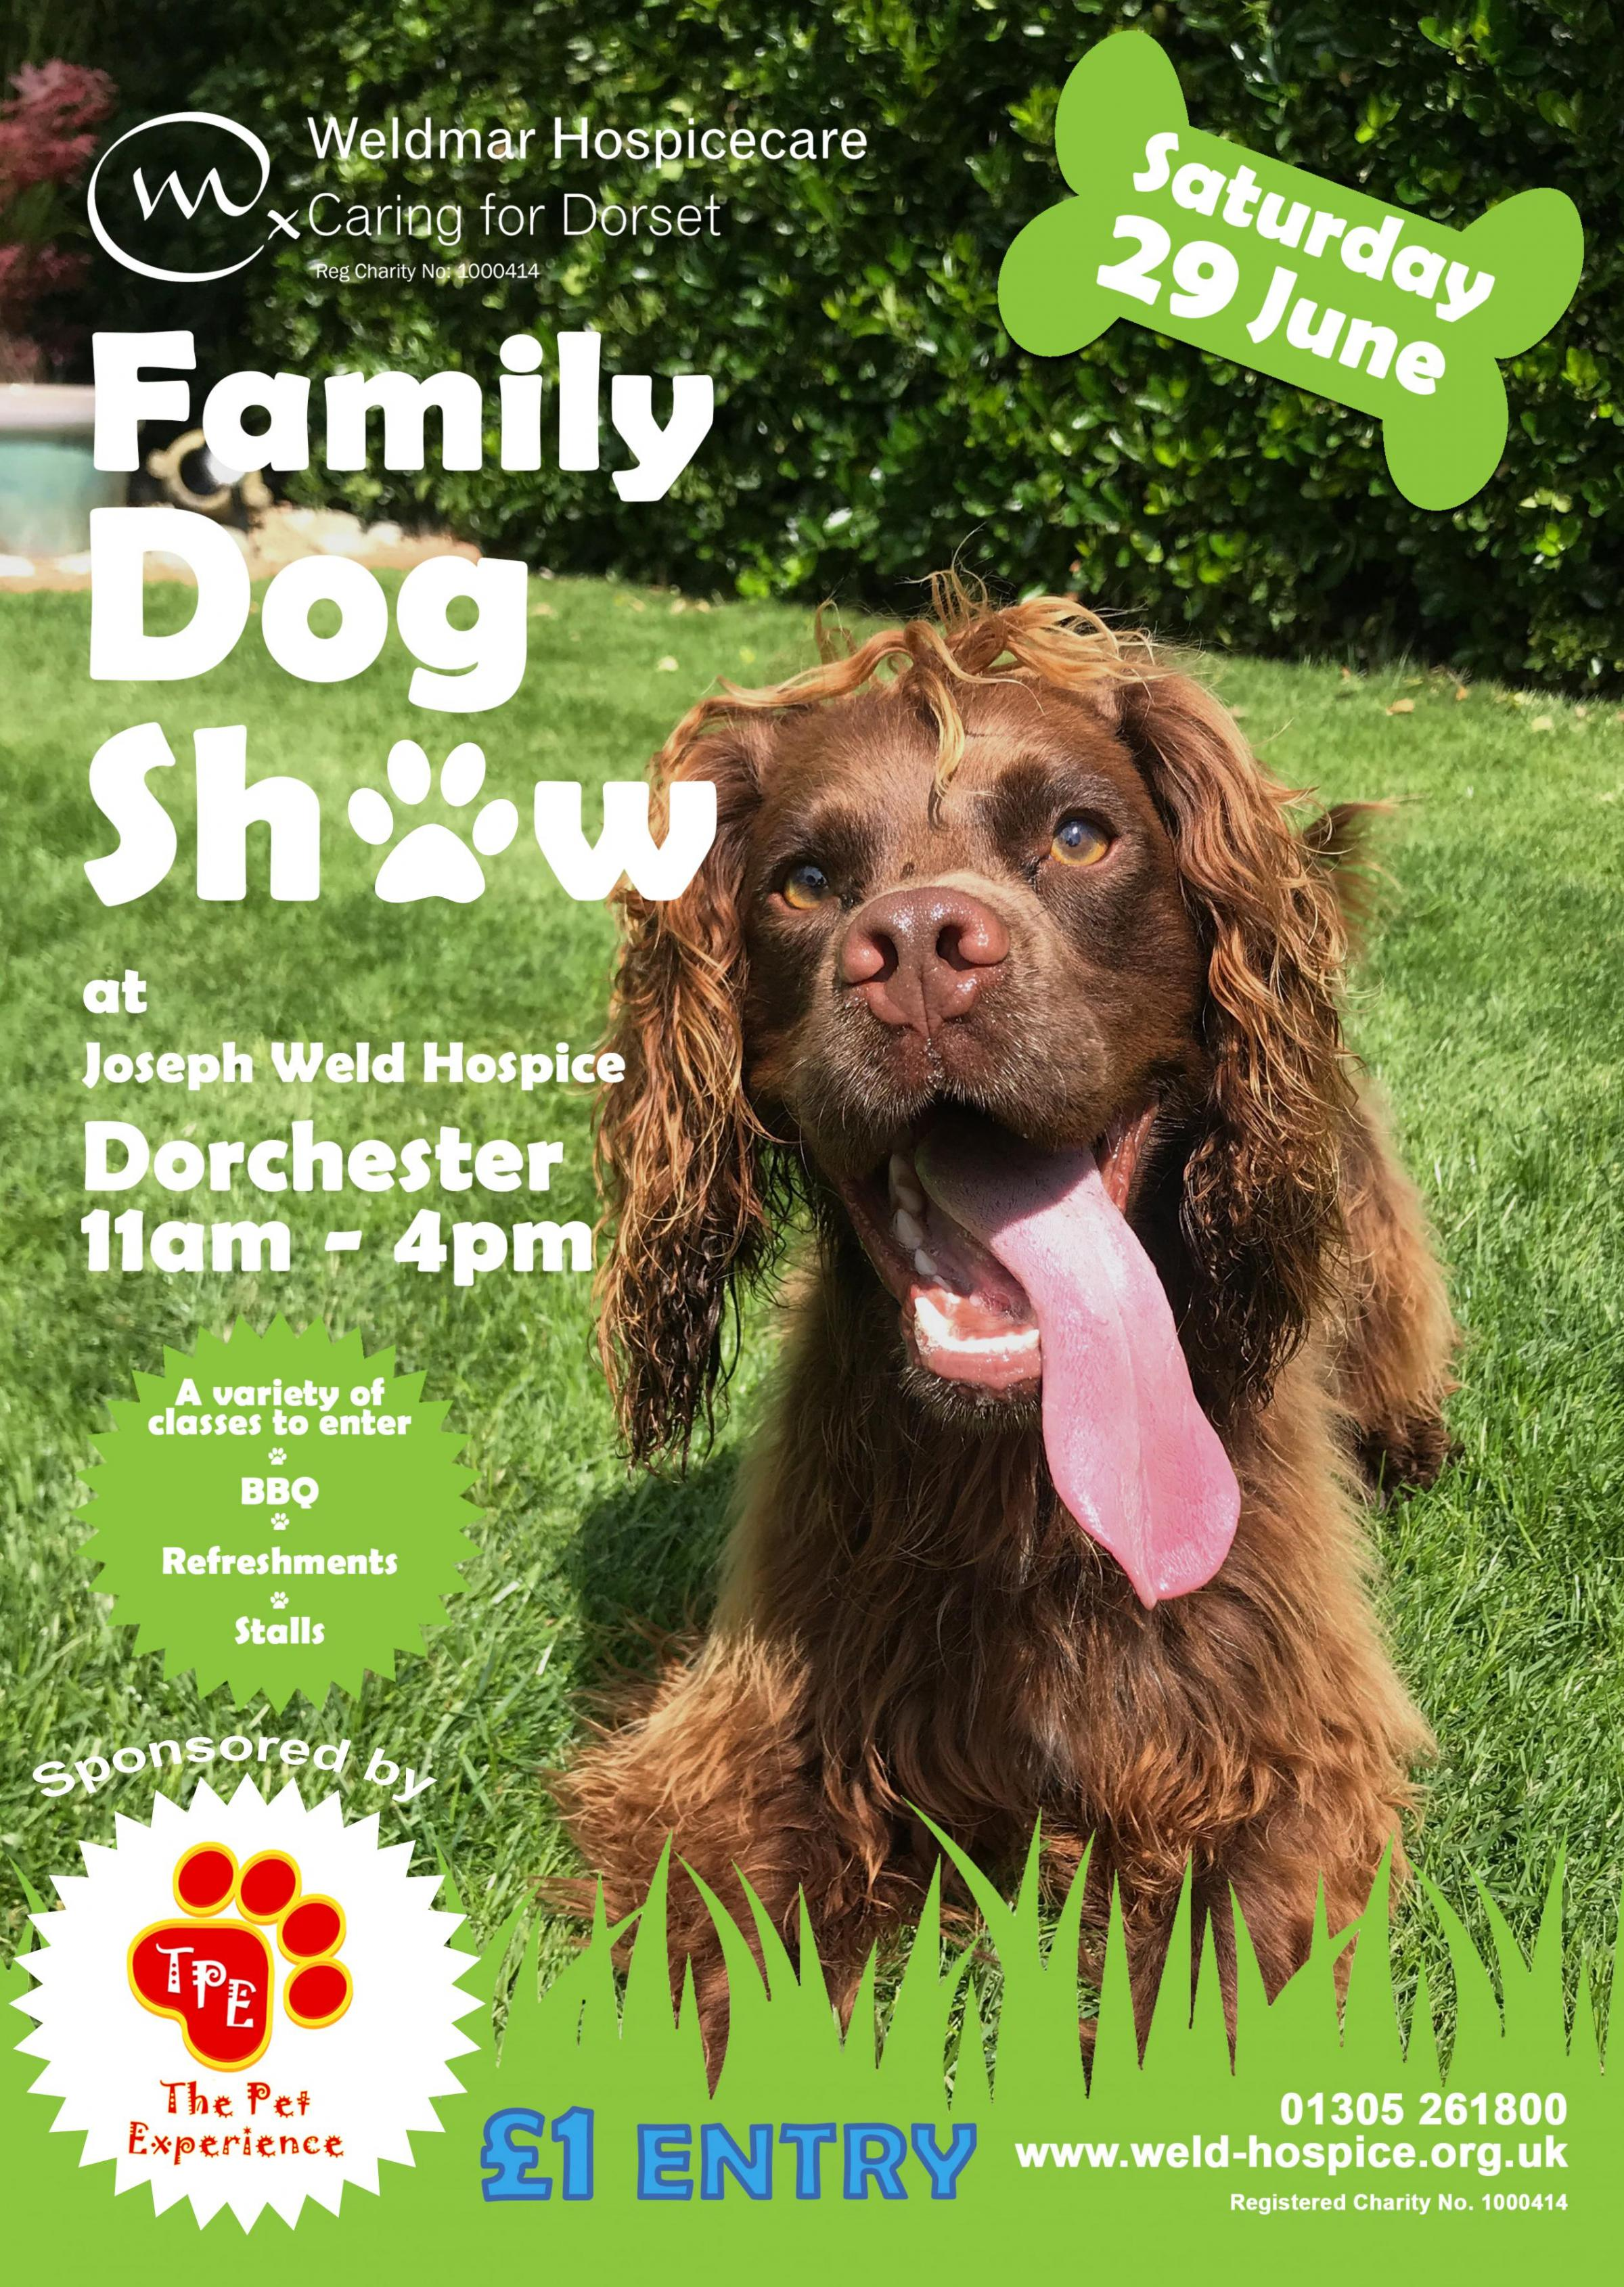 Family Dog Show - In aid of Weldmar Hospicecare